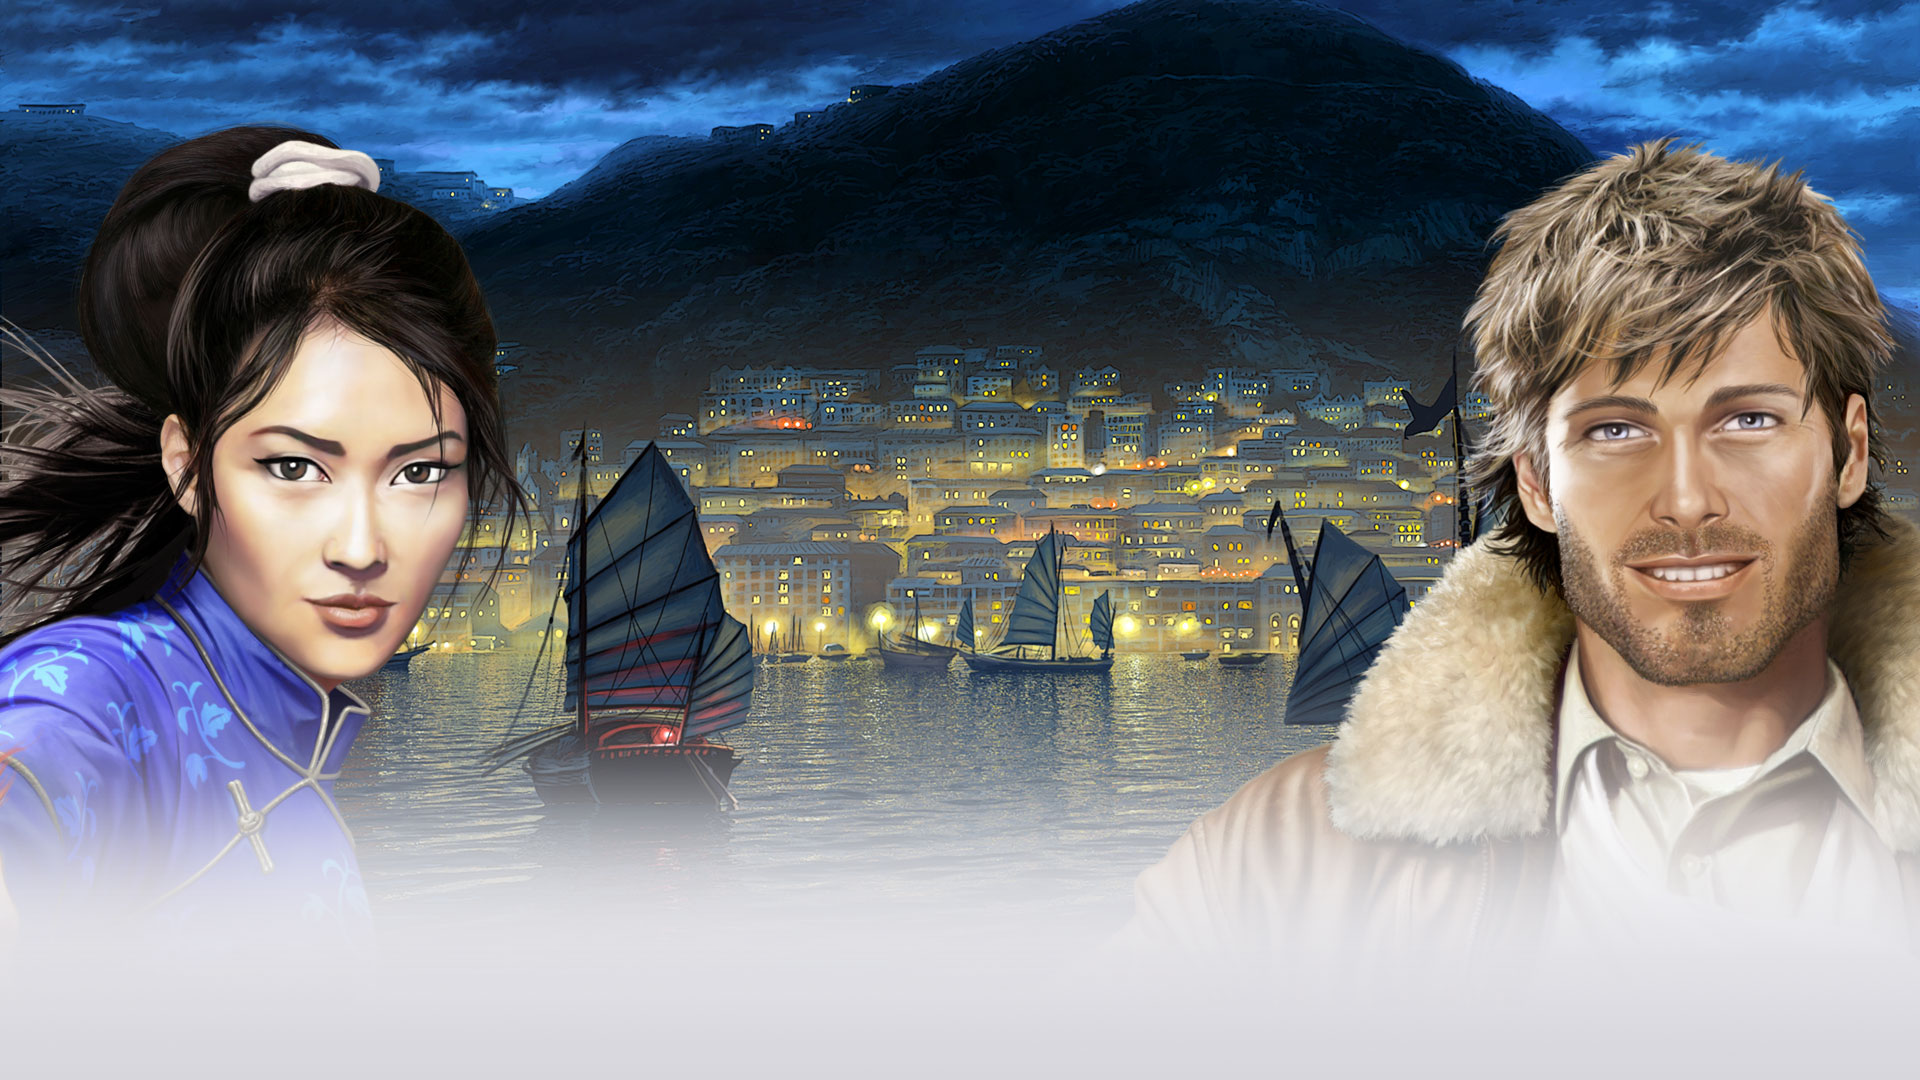 Hit point-and-click adventure game Lost Horizon out now on iOS